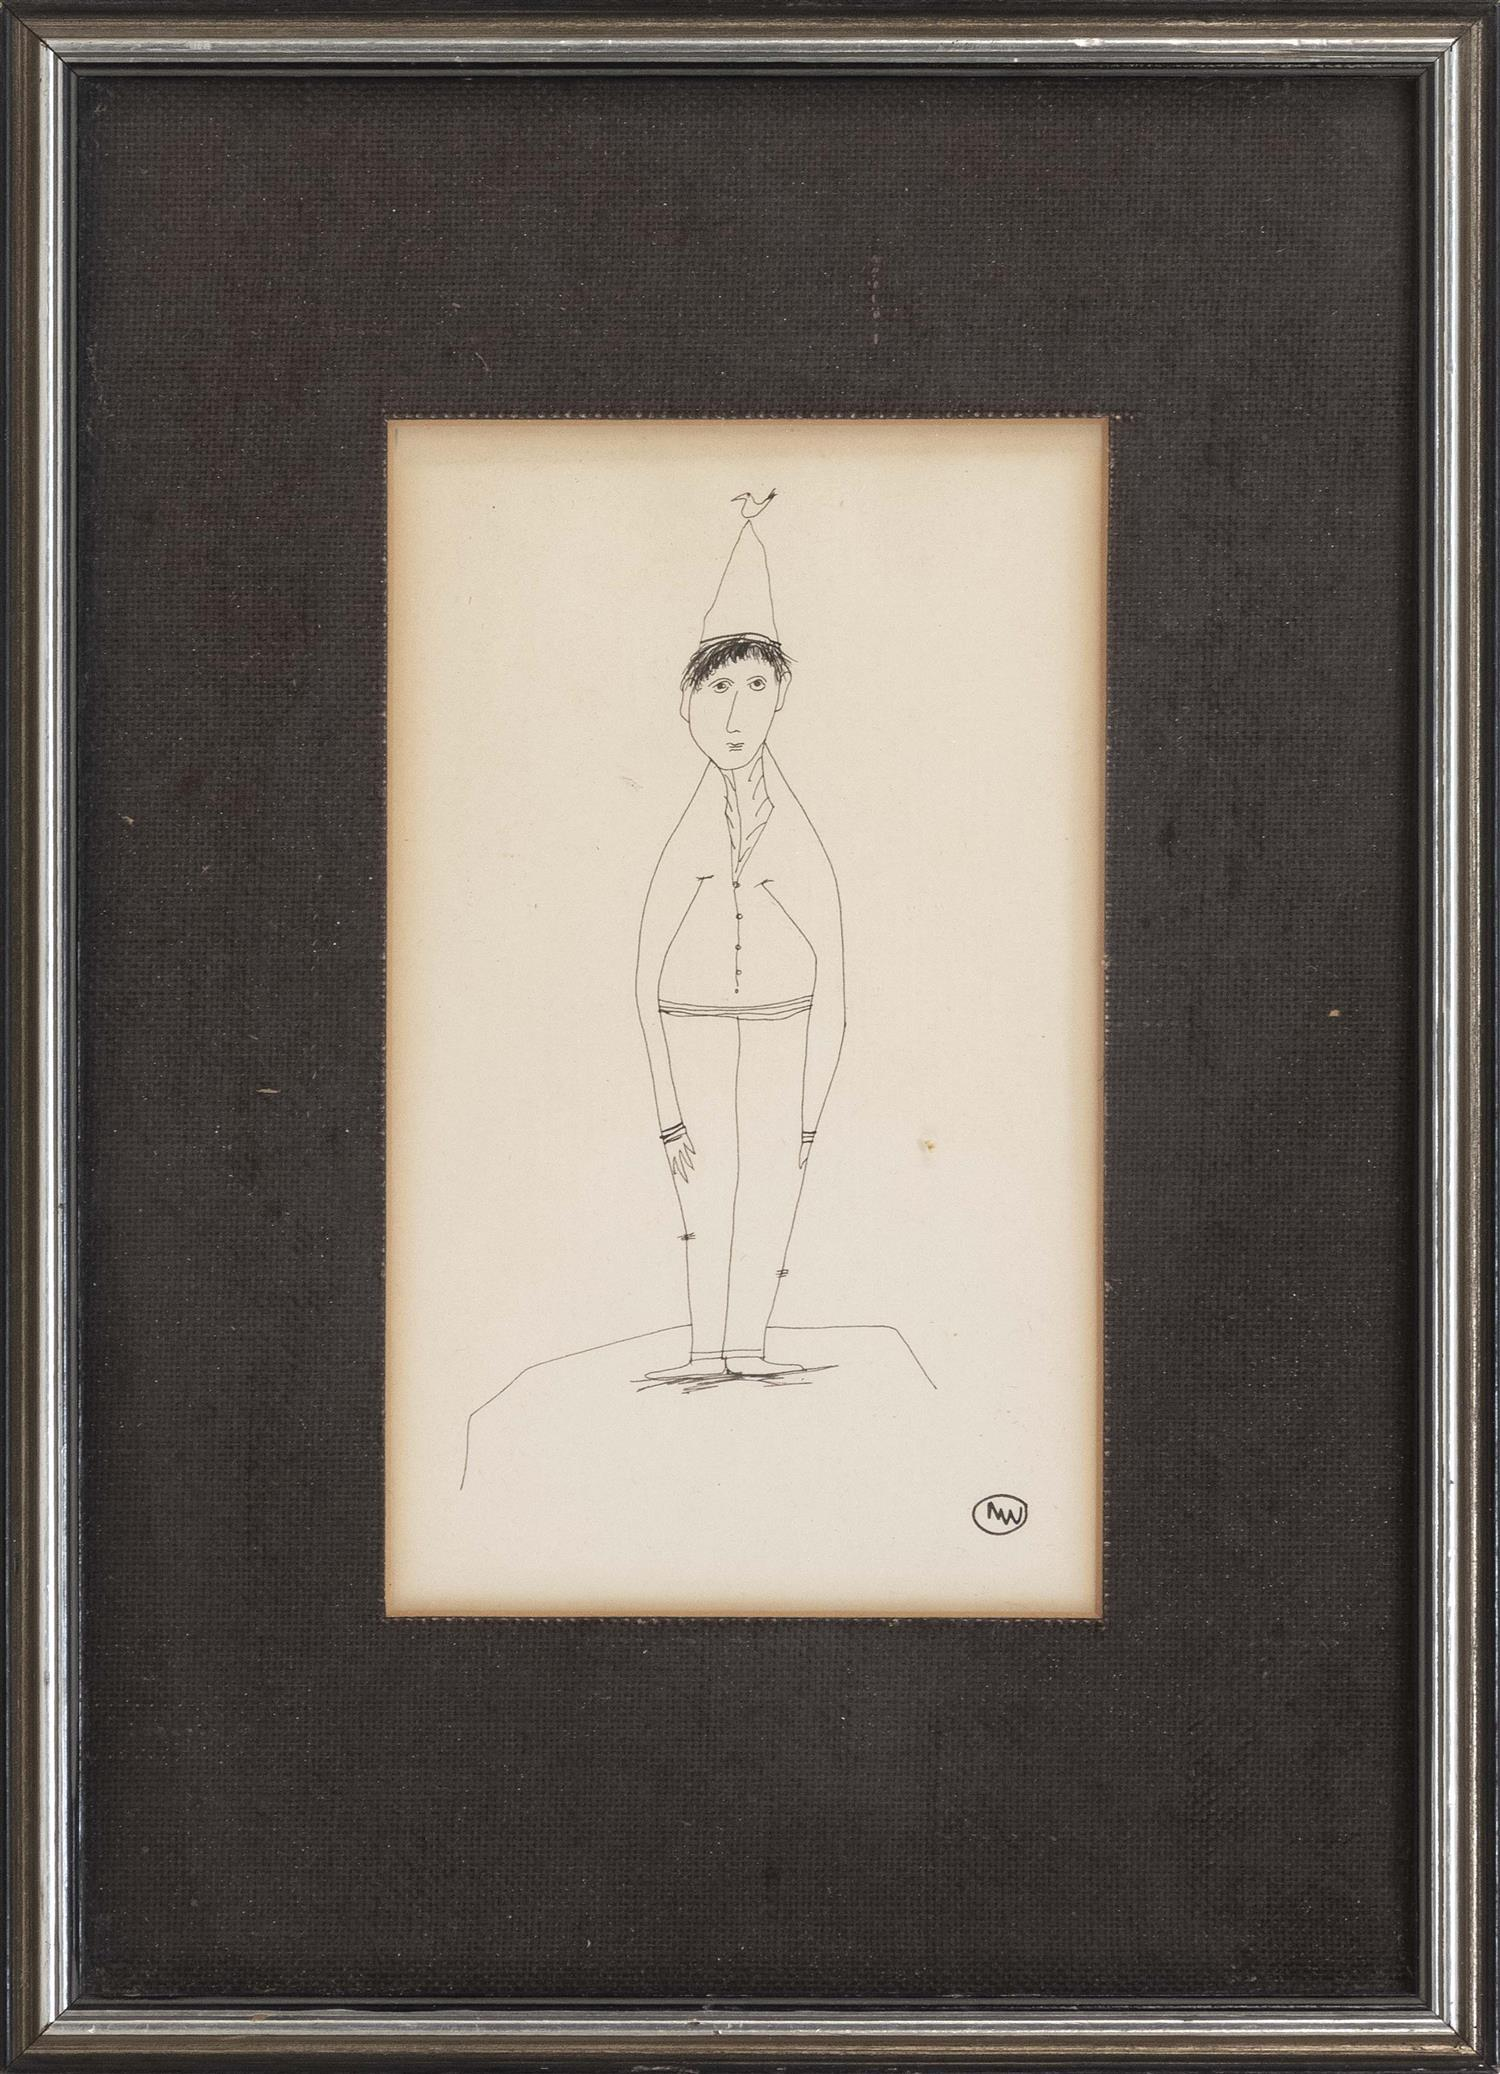 """PEN AND INK CARTOON OF A BOY WEARING A DUNCE CAP Bird perched upon the boy's cap. Encircled monogram lower right """"MW"""". On paper, 7.2.."""